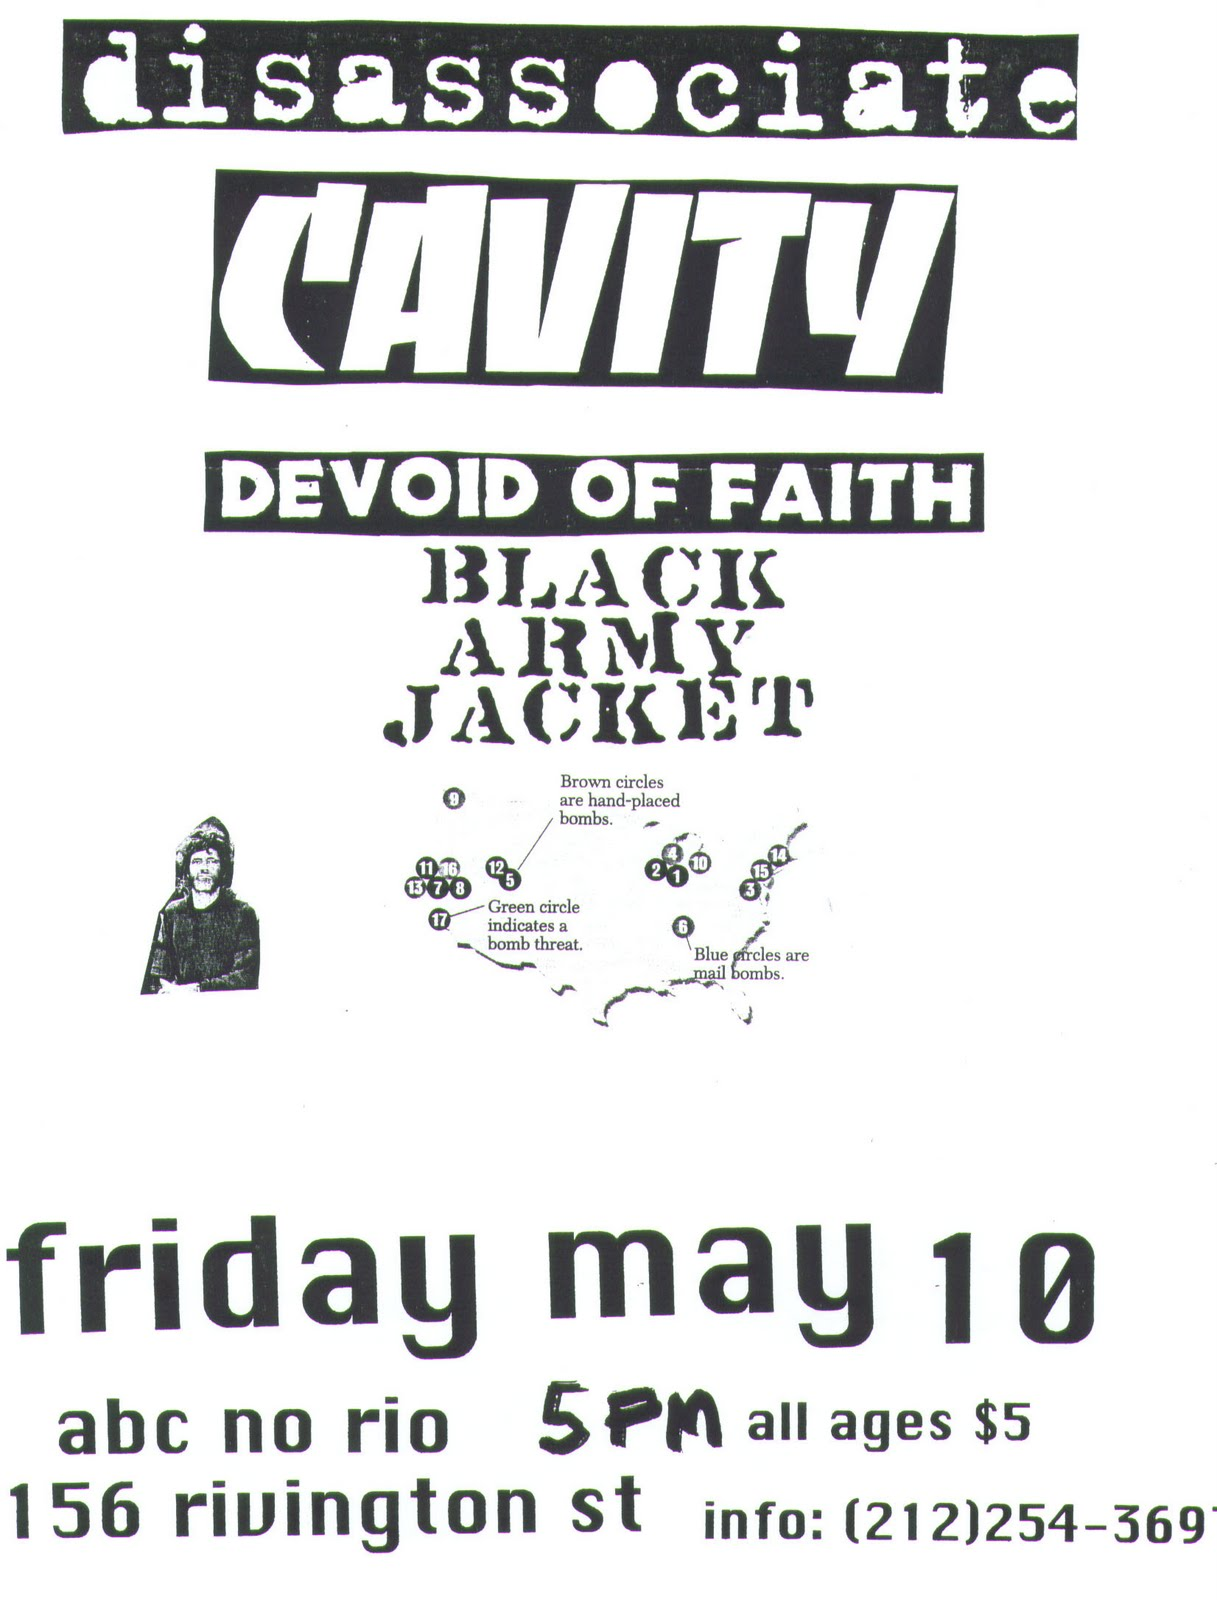 Disassociate-Cavity-Devoid Of Faith-Black Army Jacket @ ABC No Rio New York City NY 5-10-96